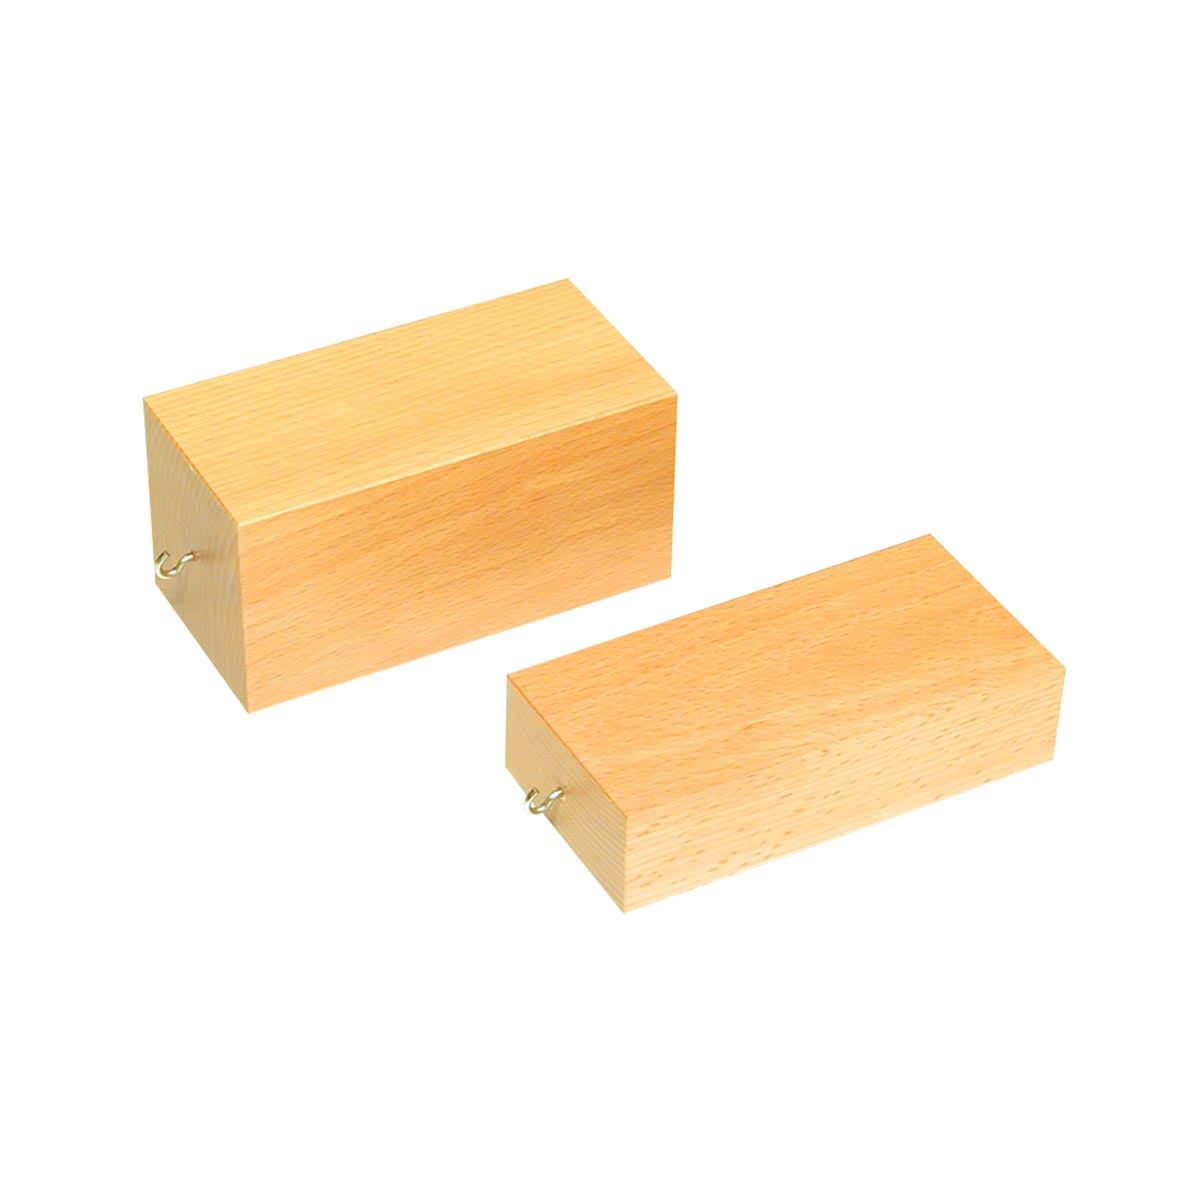 Wooden Blocks for Friction Experiments - U15026 - Friction - 3B ...